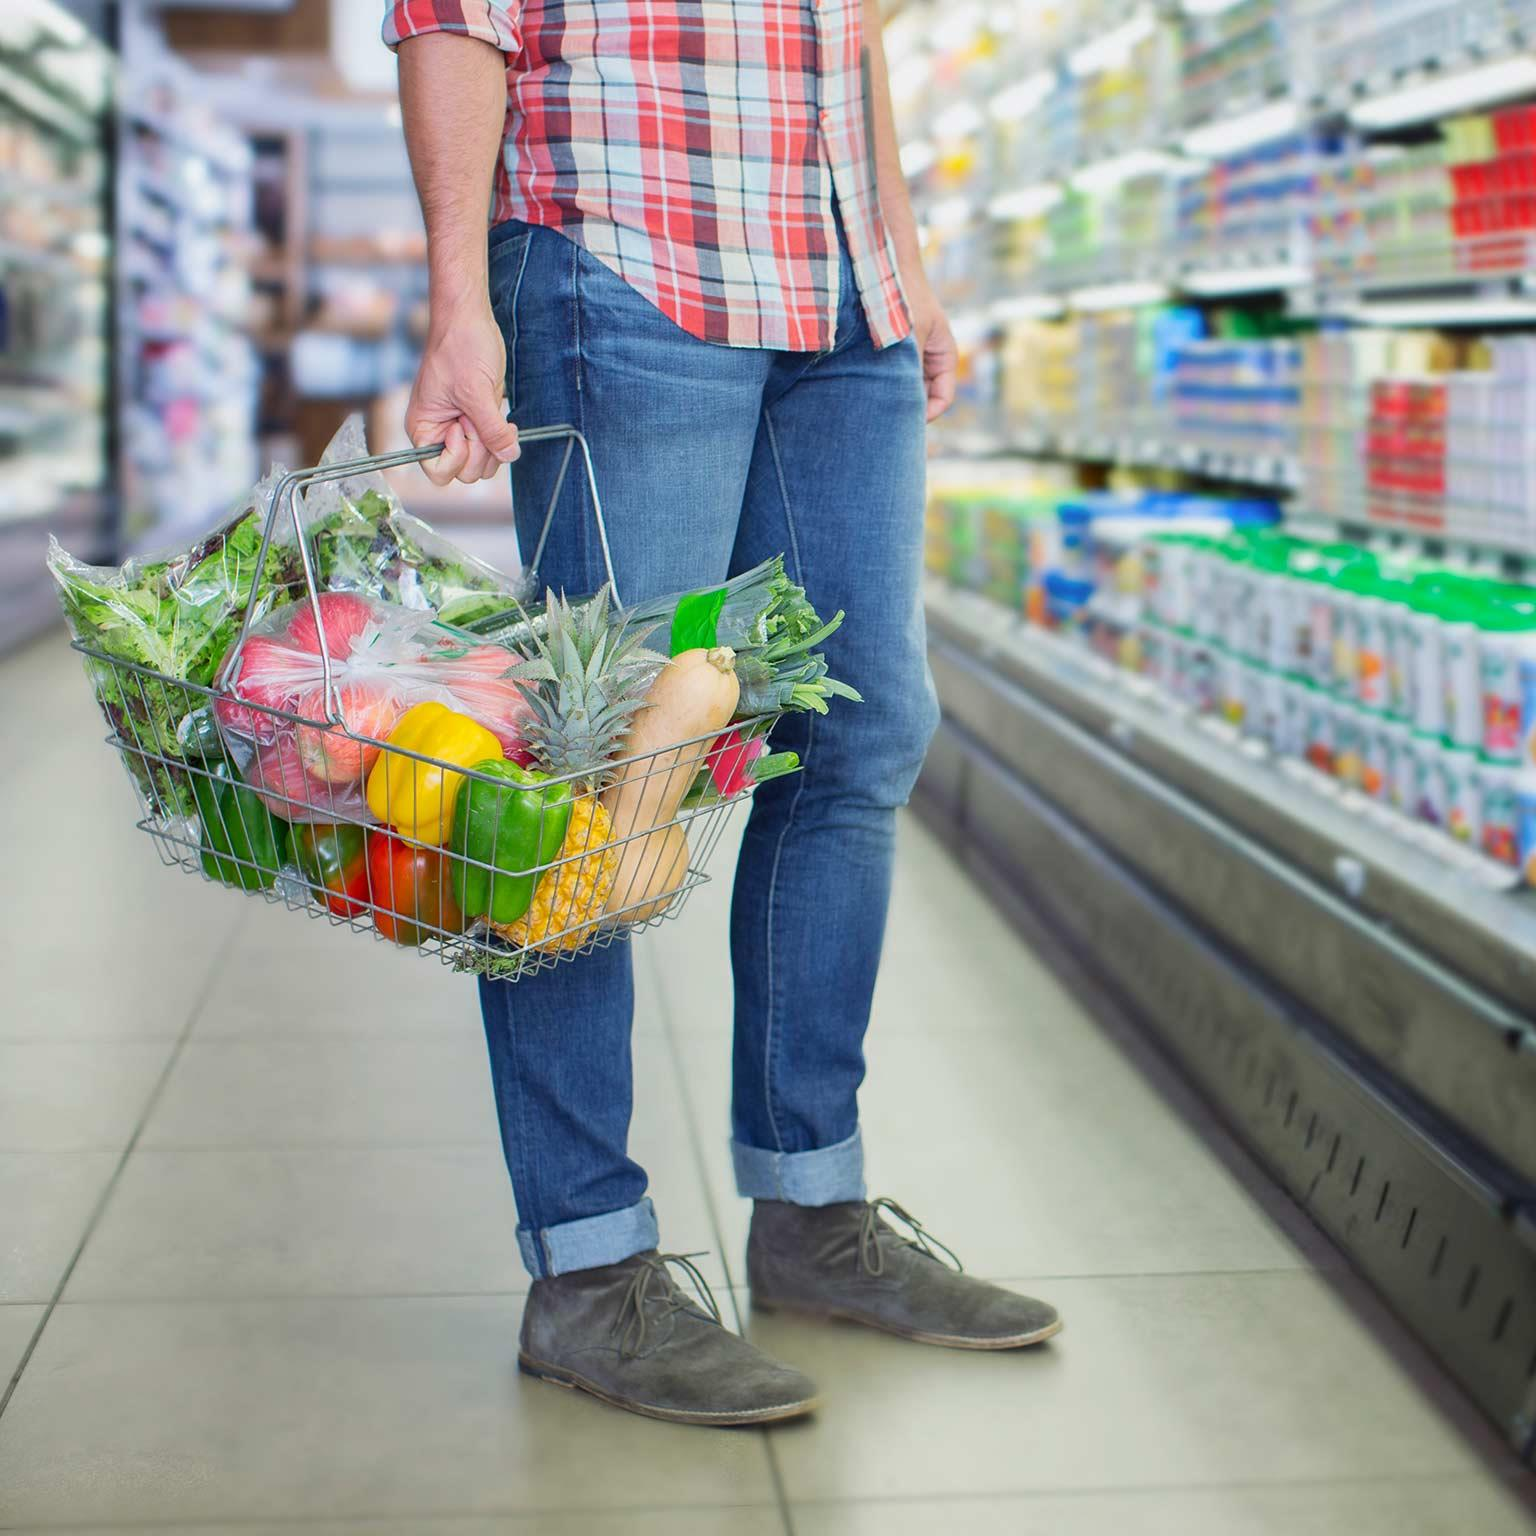 In Shop Online Store The Future Of Grocery In Store And Online Mckinsey